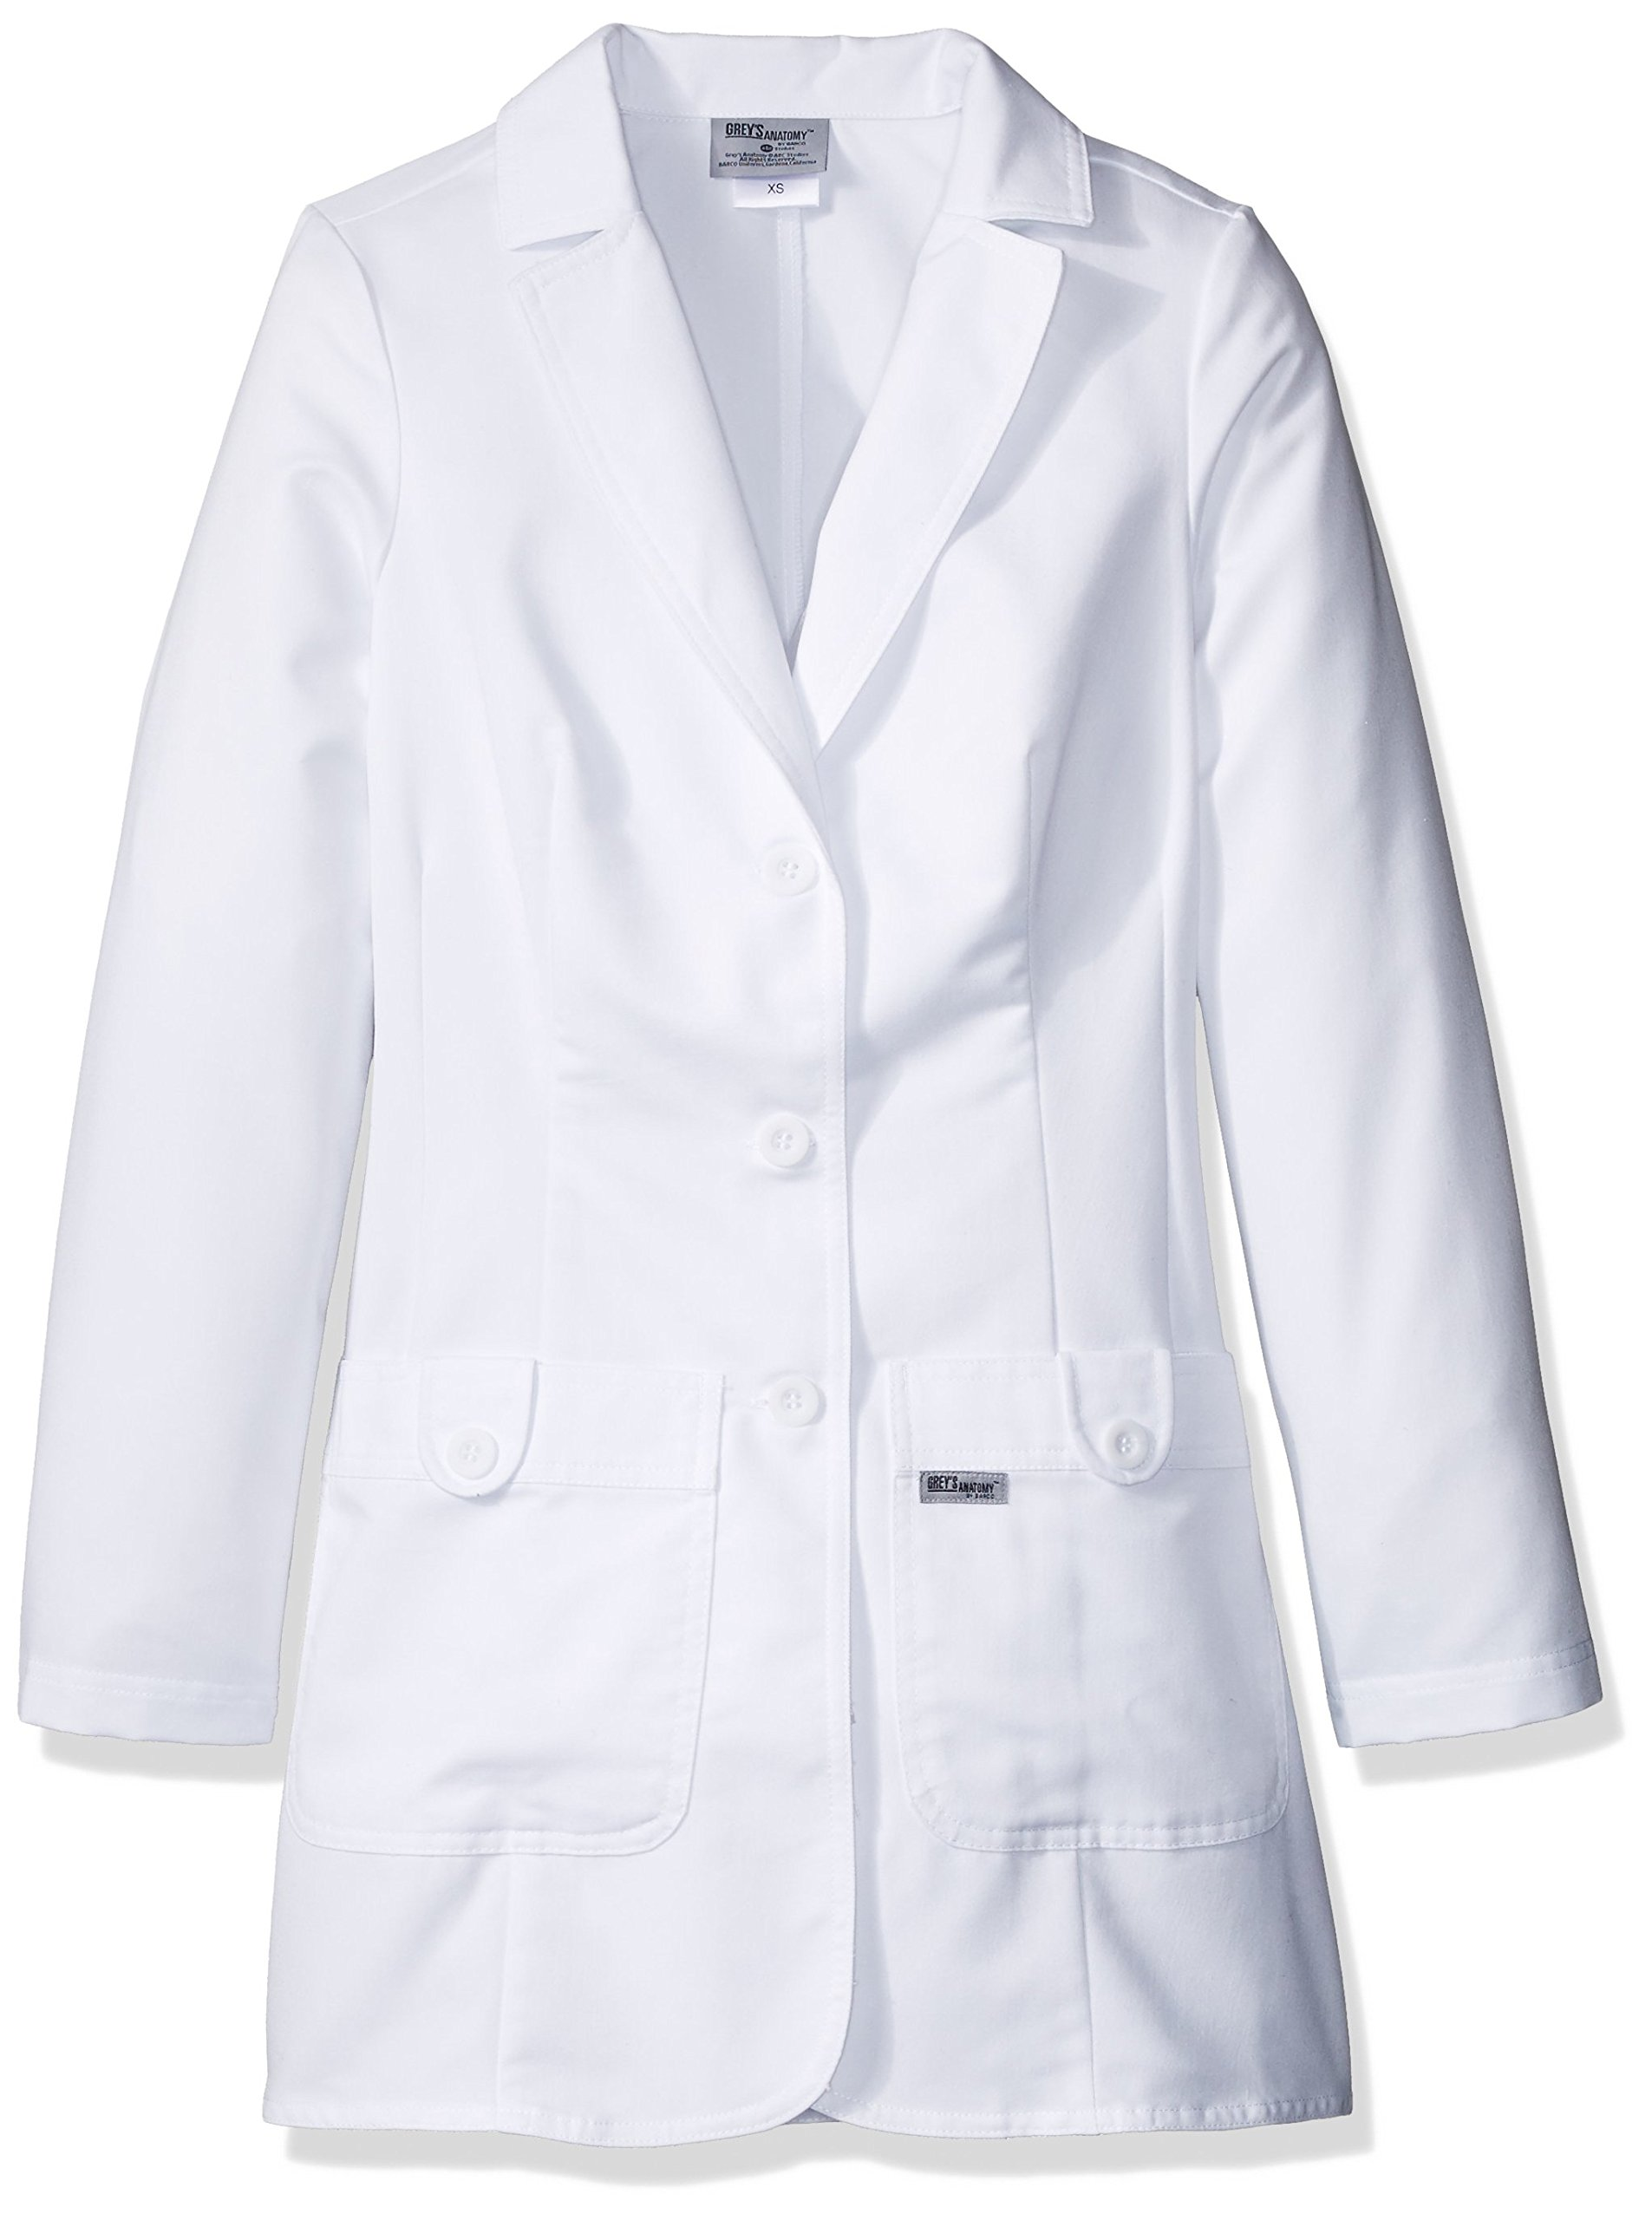 Grey's Anatomy Signature Women's 32 Inch Two Pocket Fitted Lab Coat, White, 5X-Large